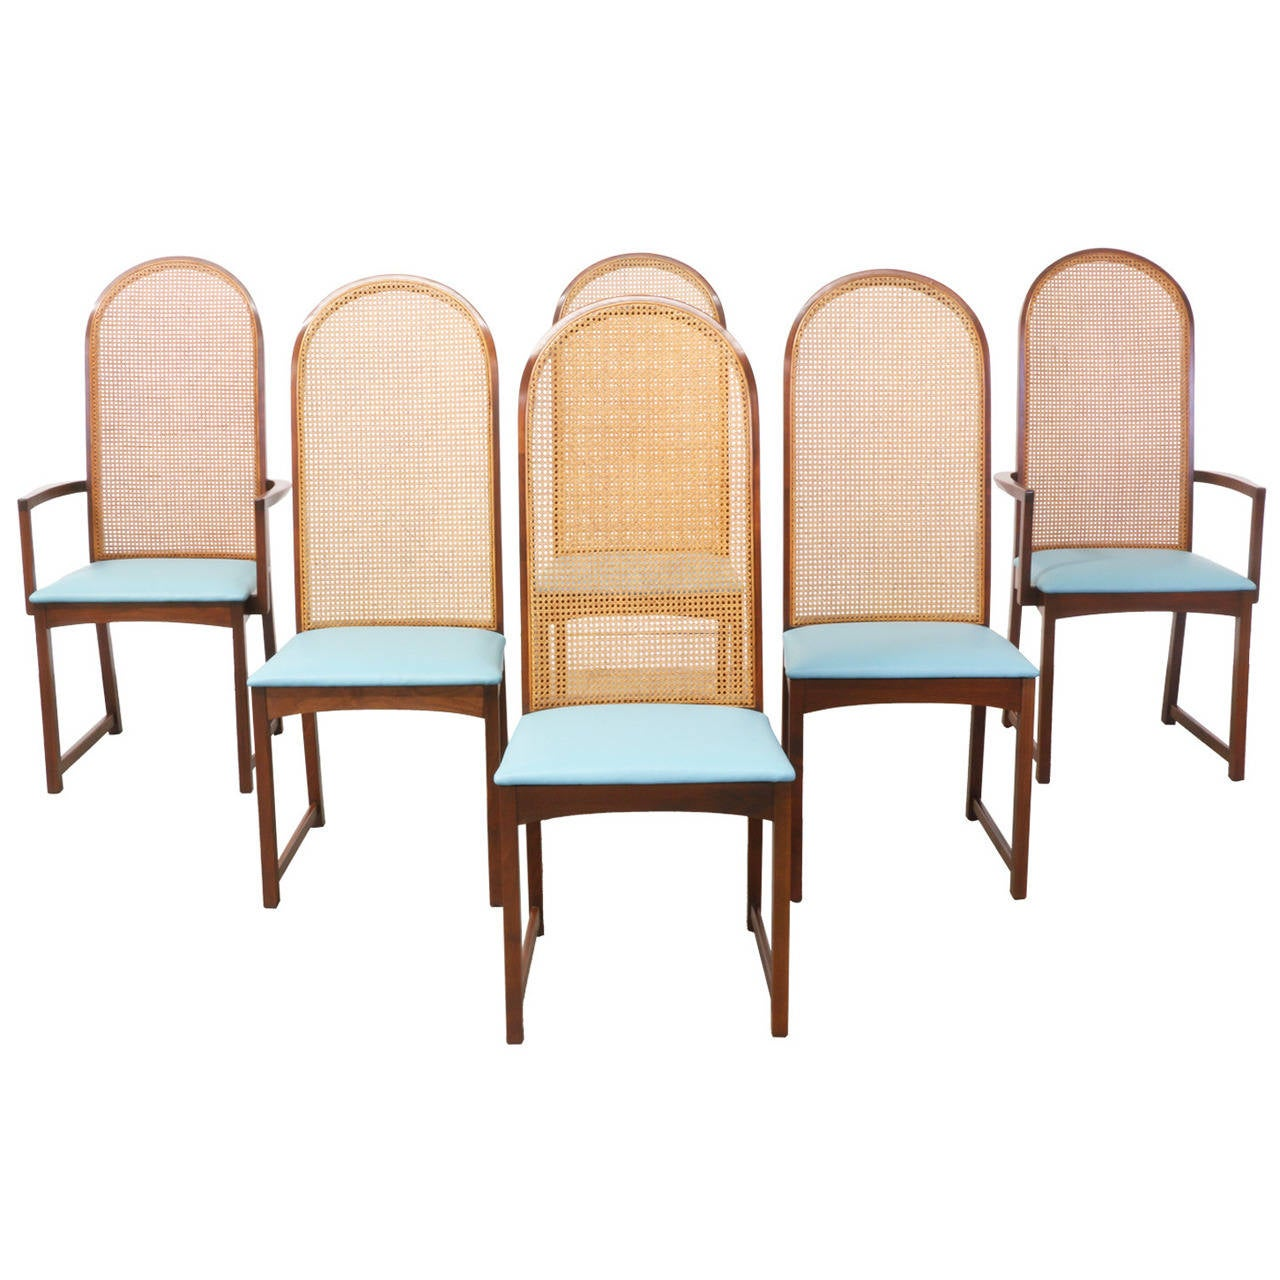 Milo Baughman Dining Chairs With Cane Backrest For Thayer